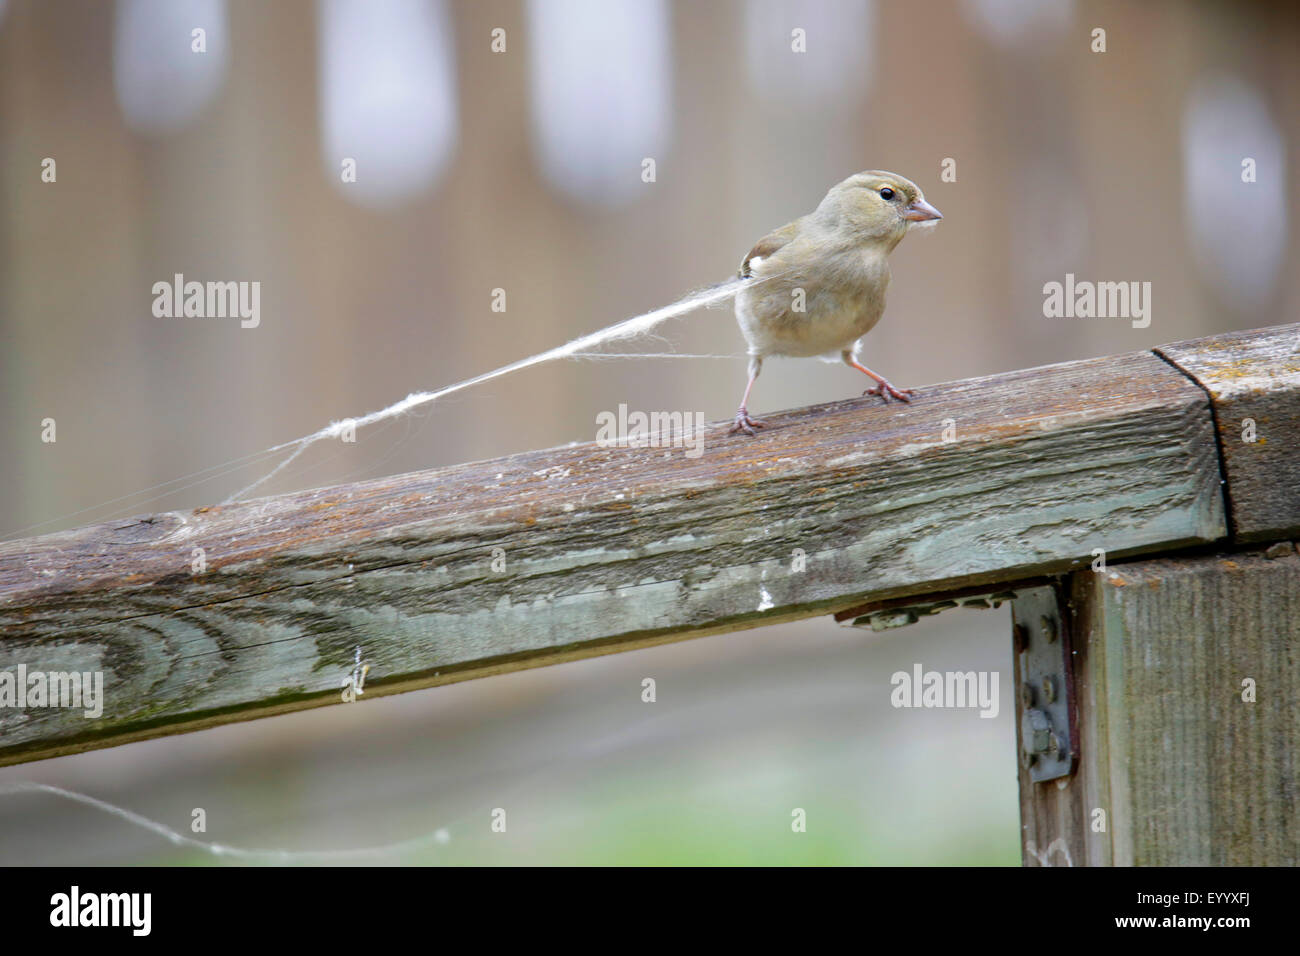 chaffinch (Fringilla coelebs), female catching a spider cocoon for building a nest, Germany, Straubing Stock Photo